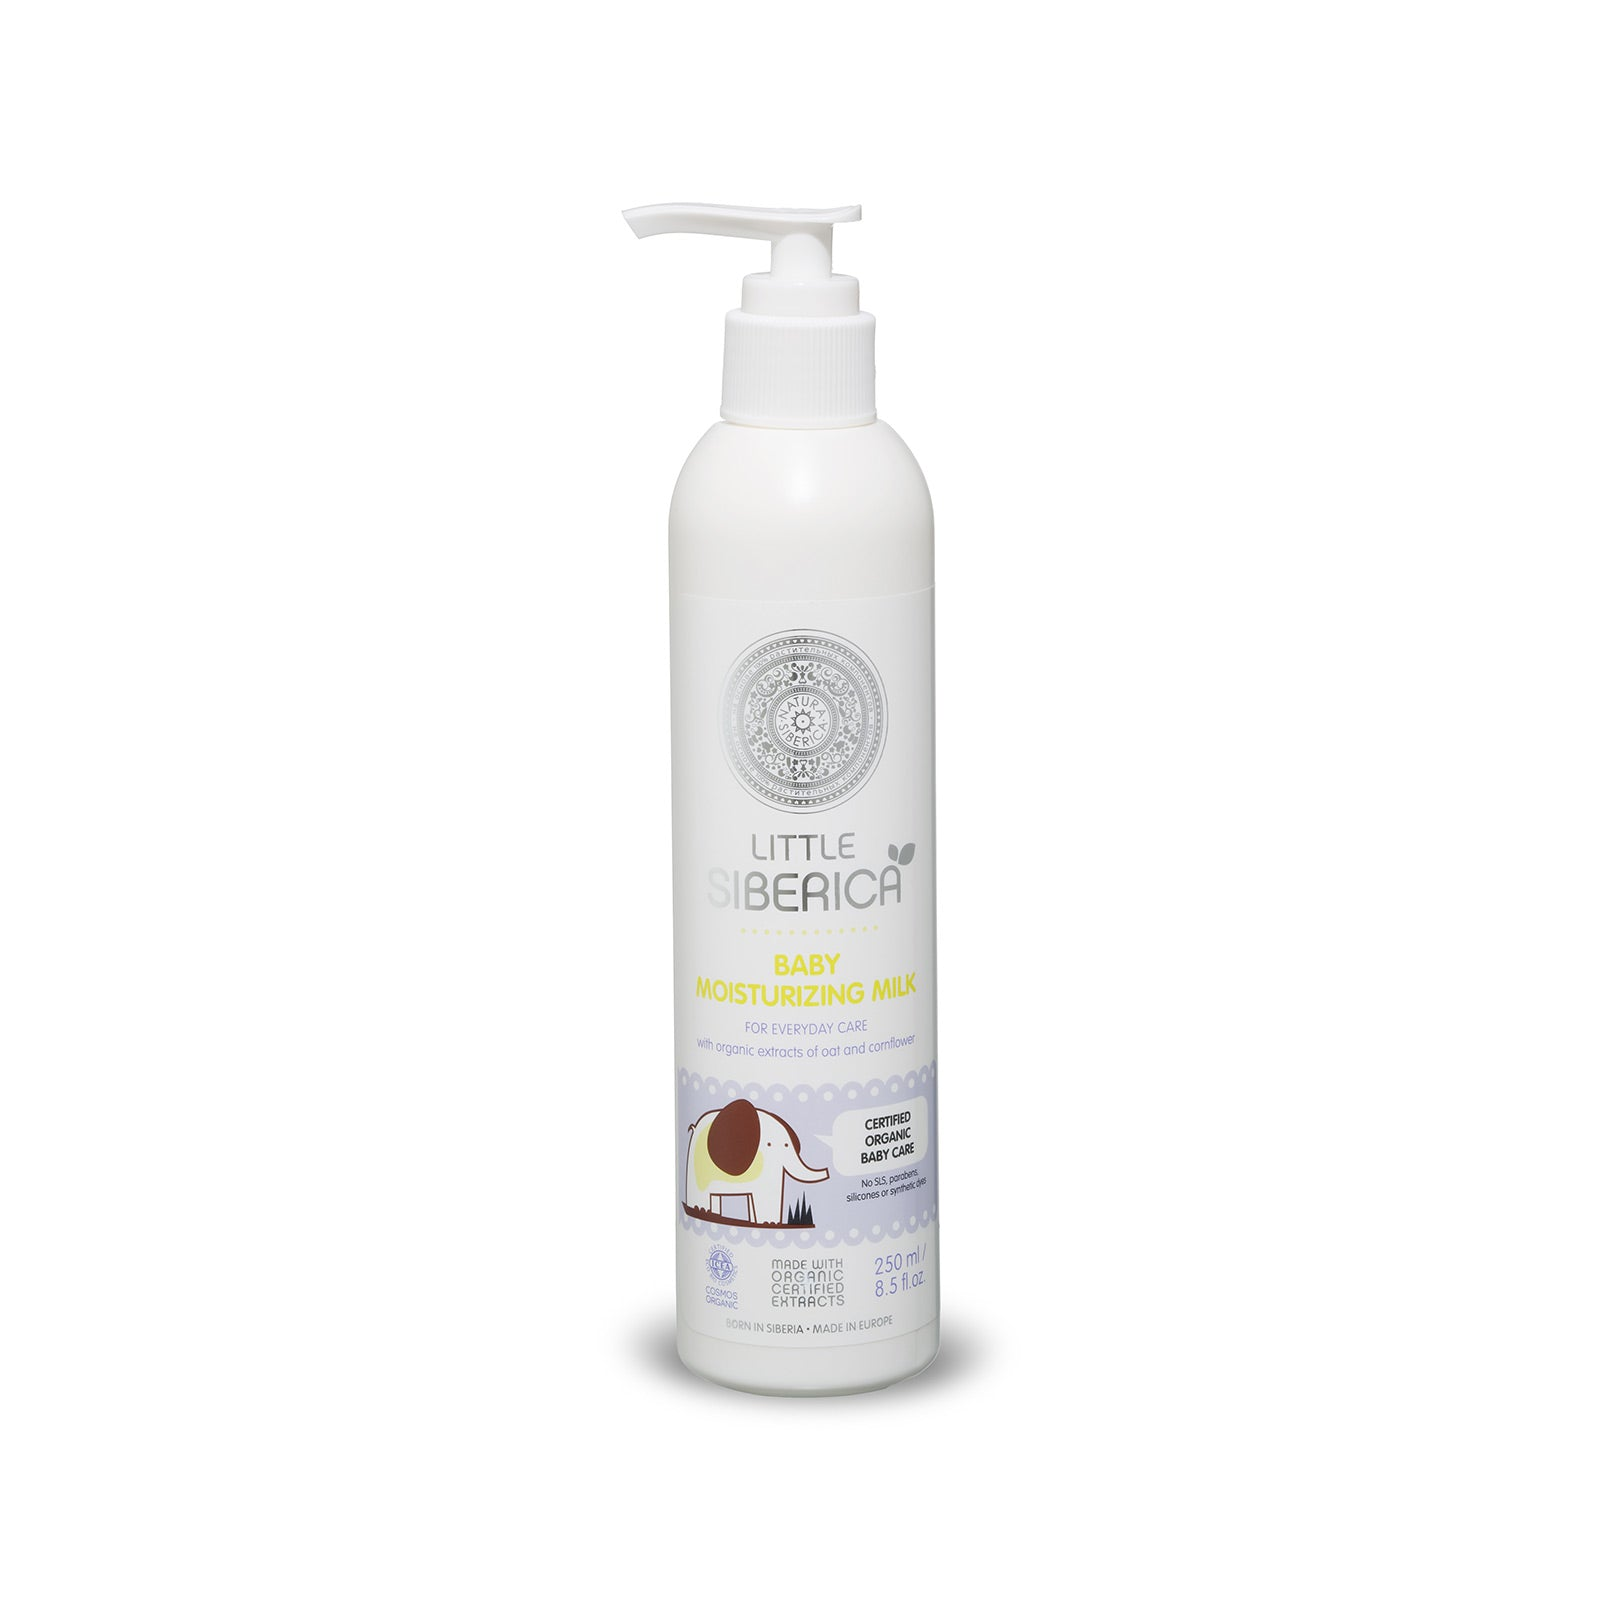 Little Siberica Baby Moisturizing Milk, 250ml